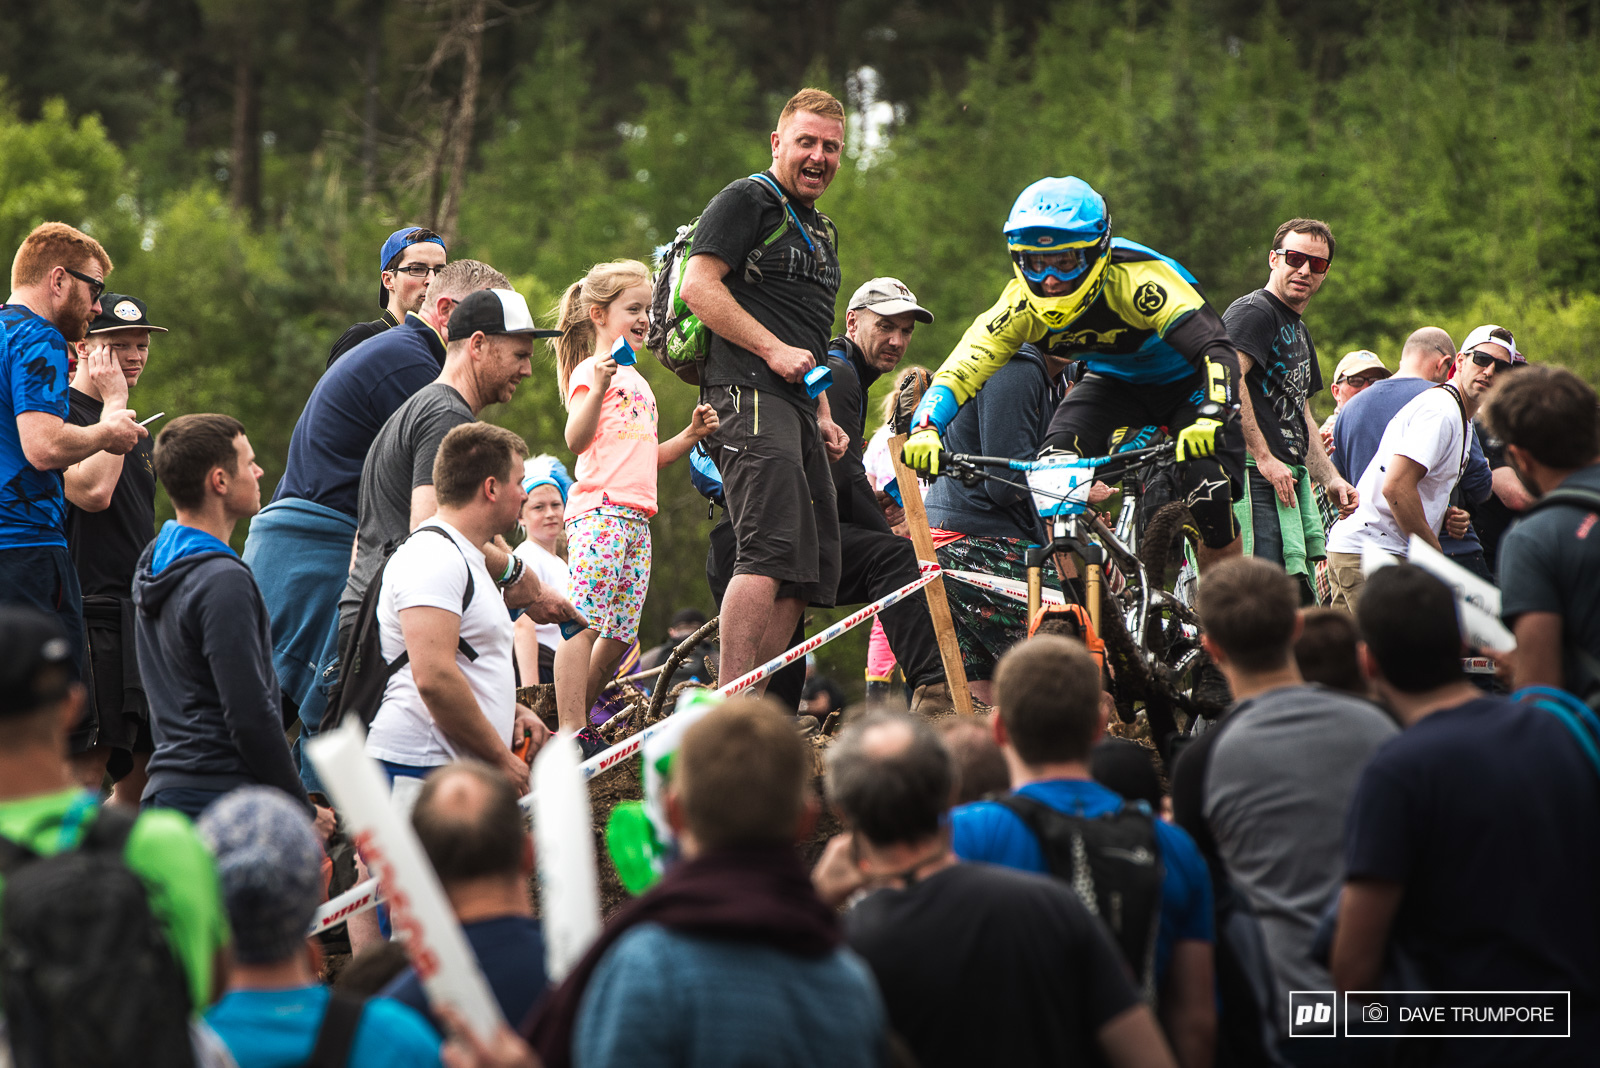 Martin Maes dode spectators left and right to get on the podium for the second round in a row.